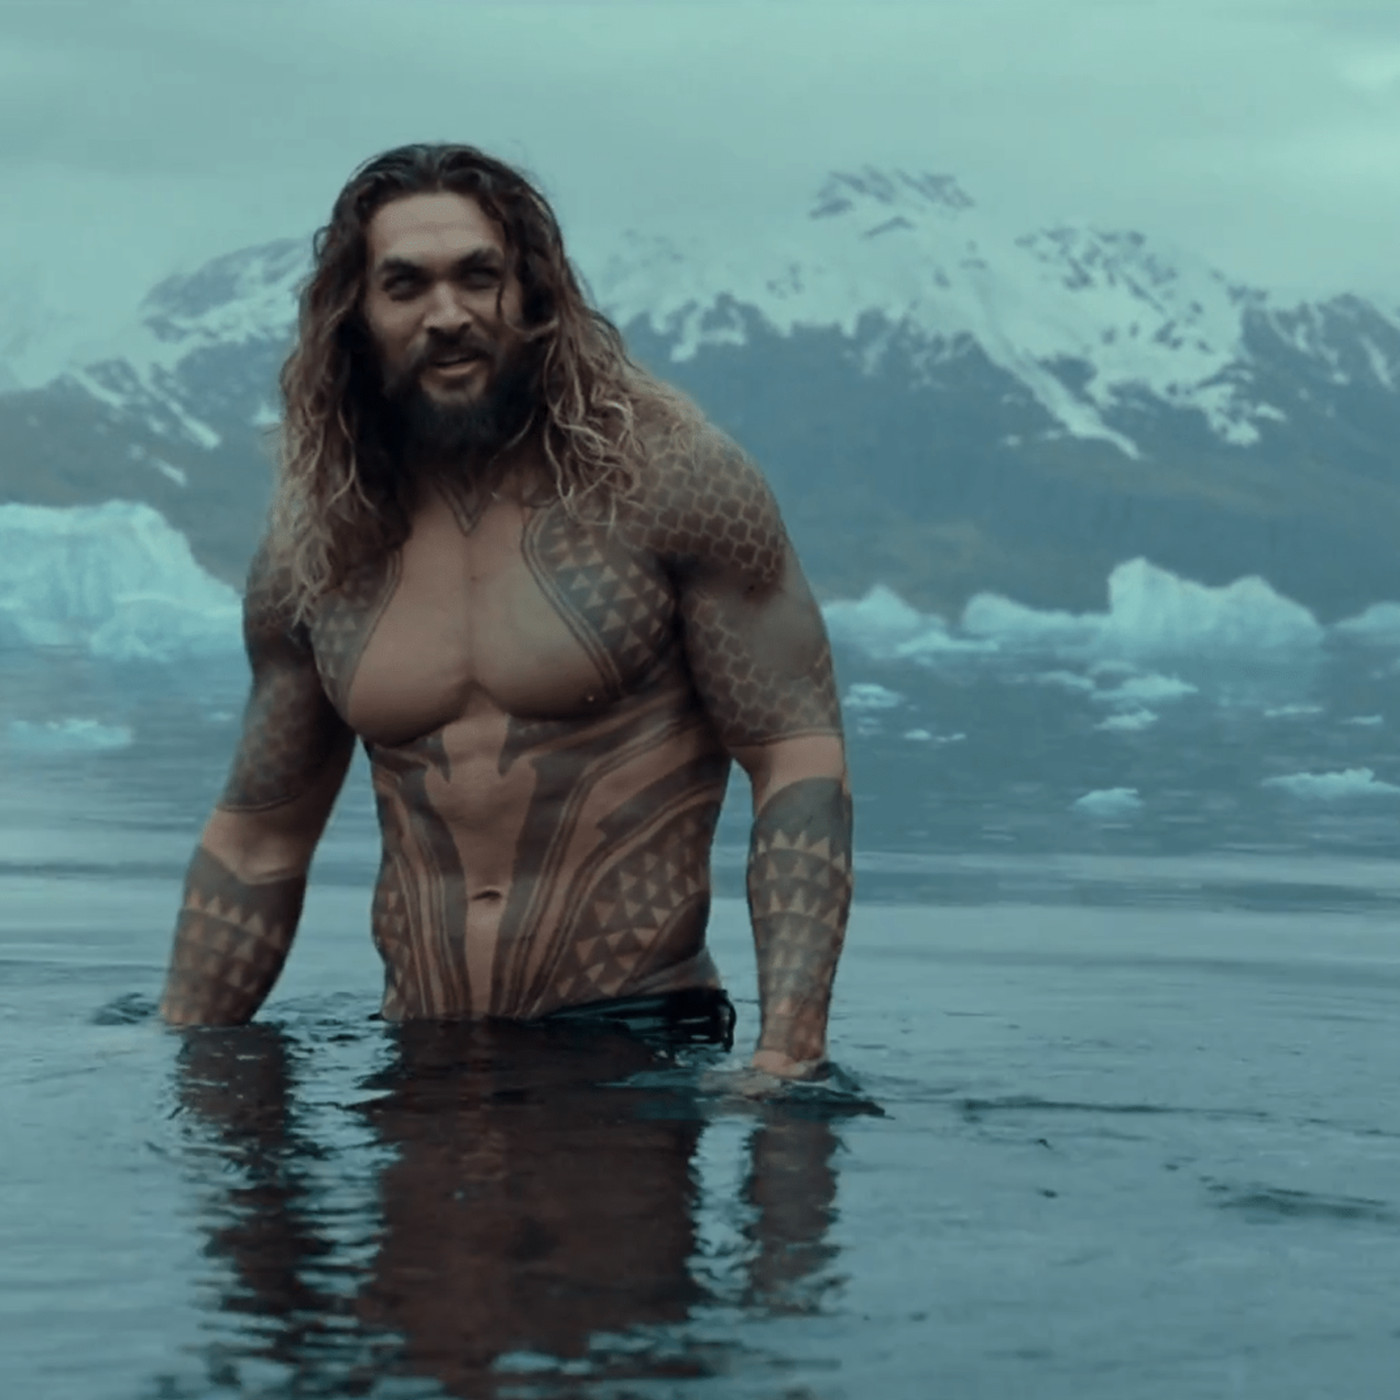 If Aquaman was a worse movie, it would have been a better one - The